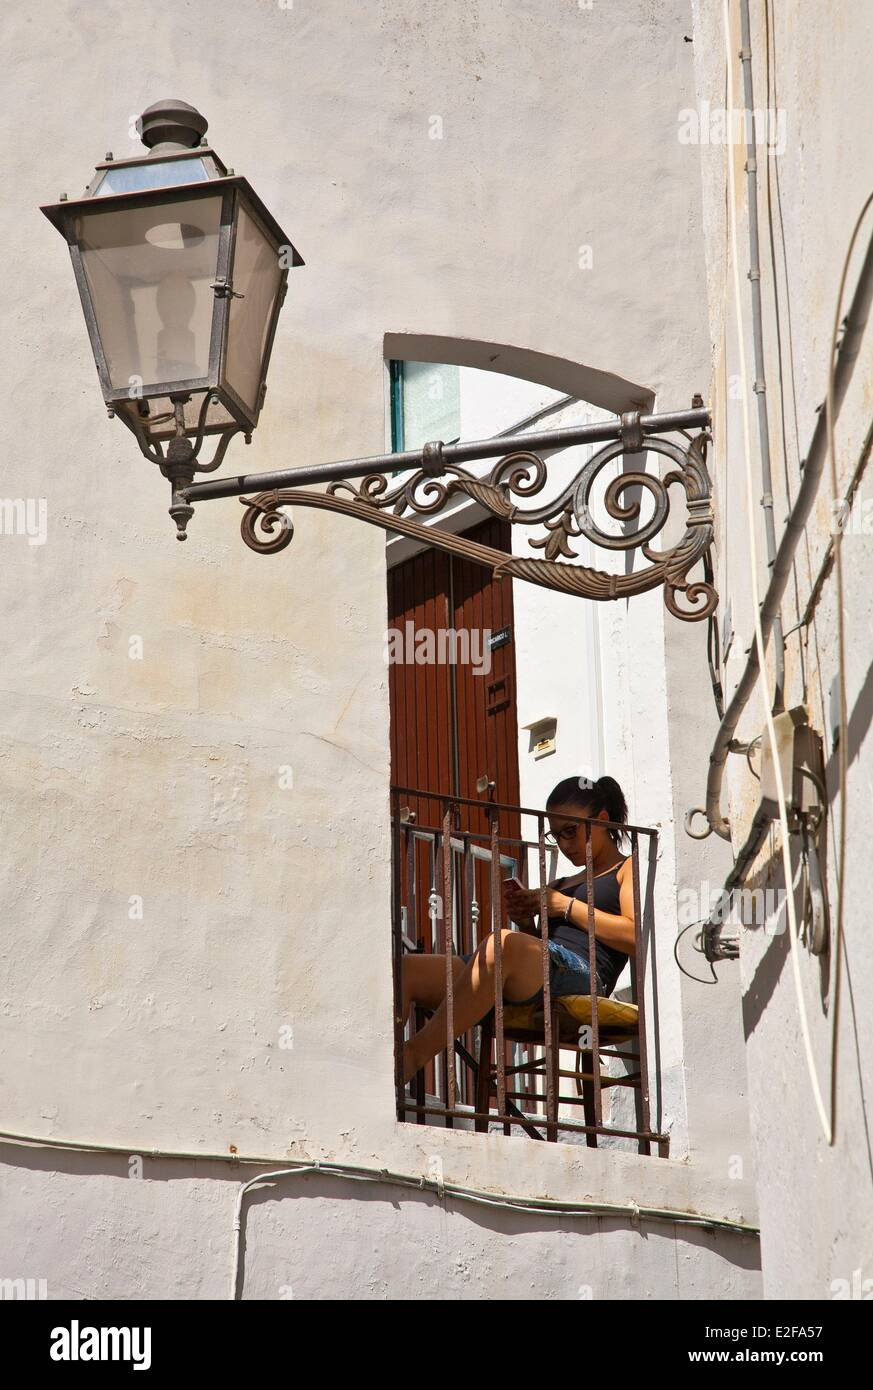 Italy, Puglia, Gallipoli, old town, youngster sms addict - Stock Image